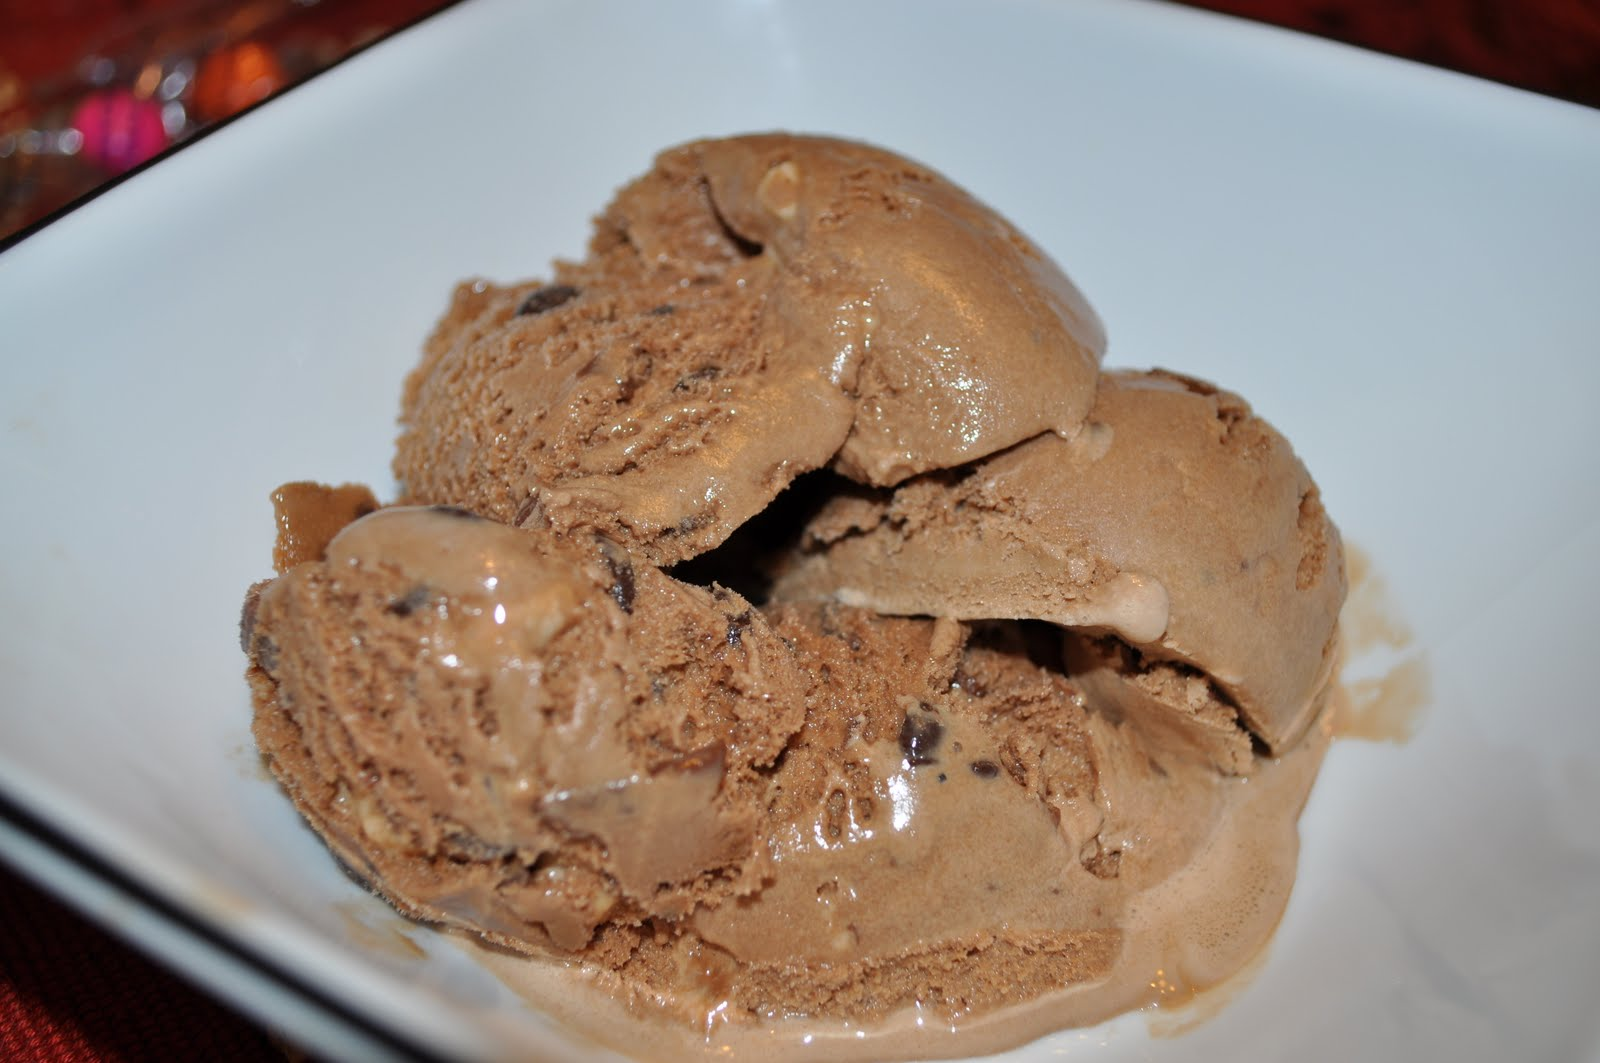 Cristina's Comida: Chocolate Ice Cream